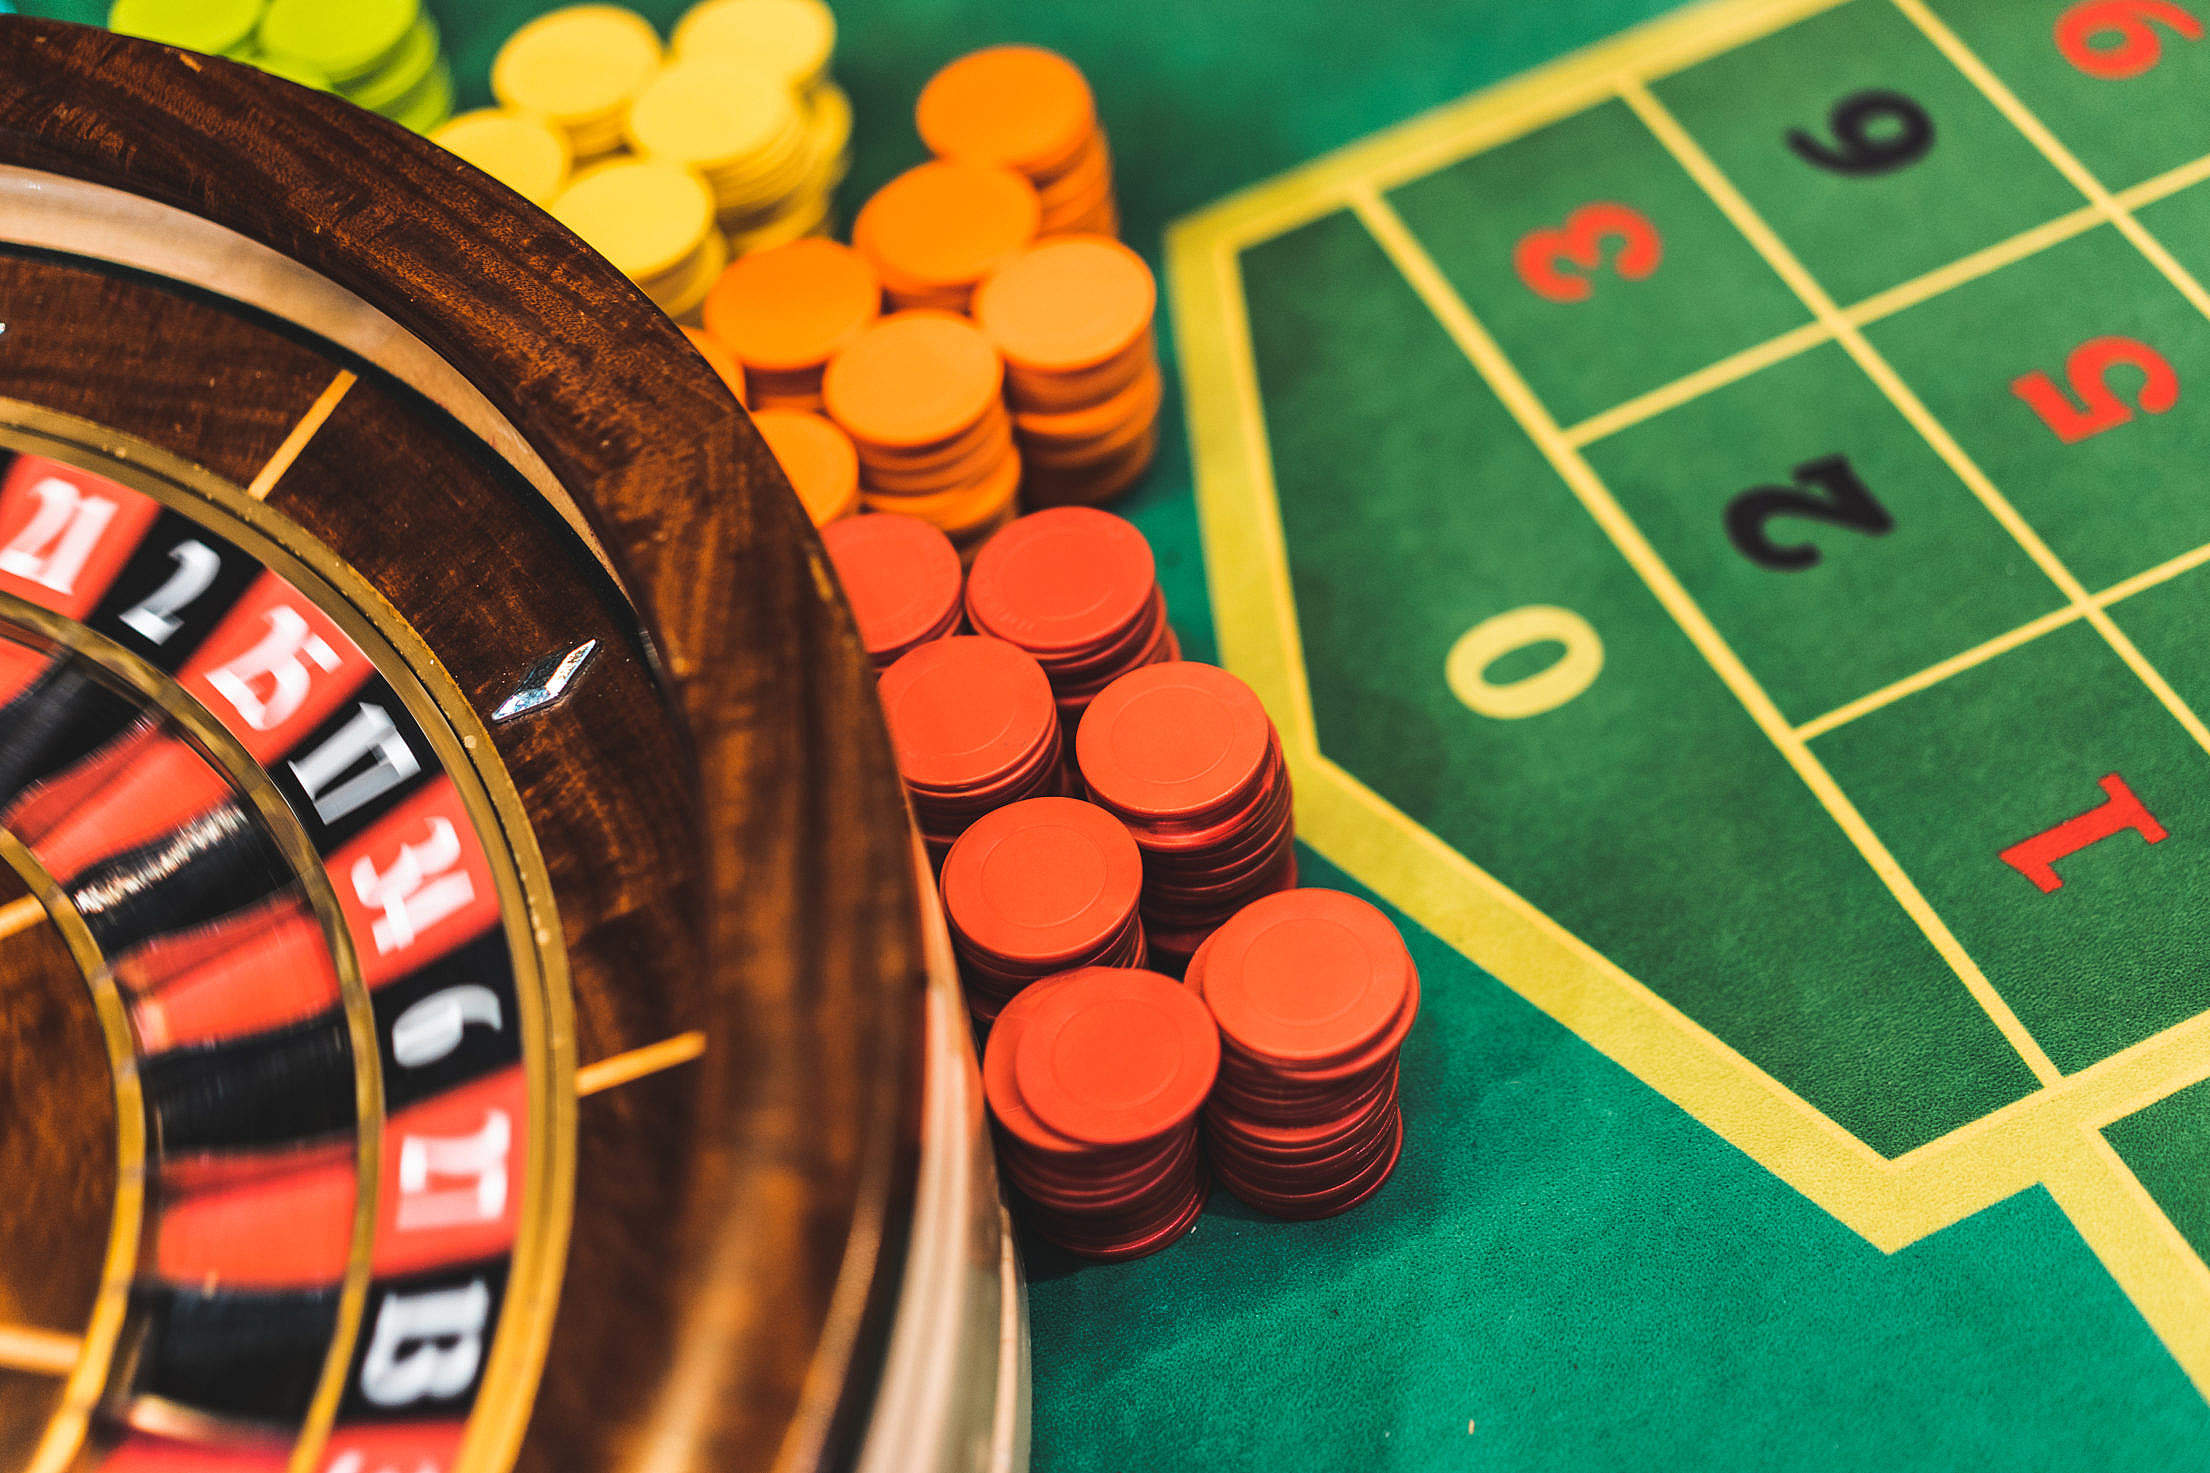 Roulette Table and Chips in Casino Free Stock Photo